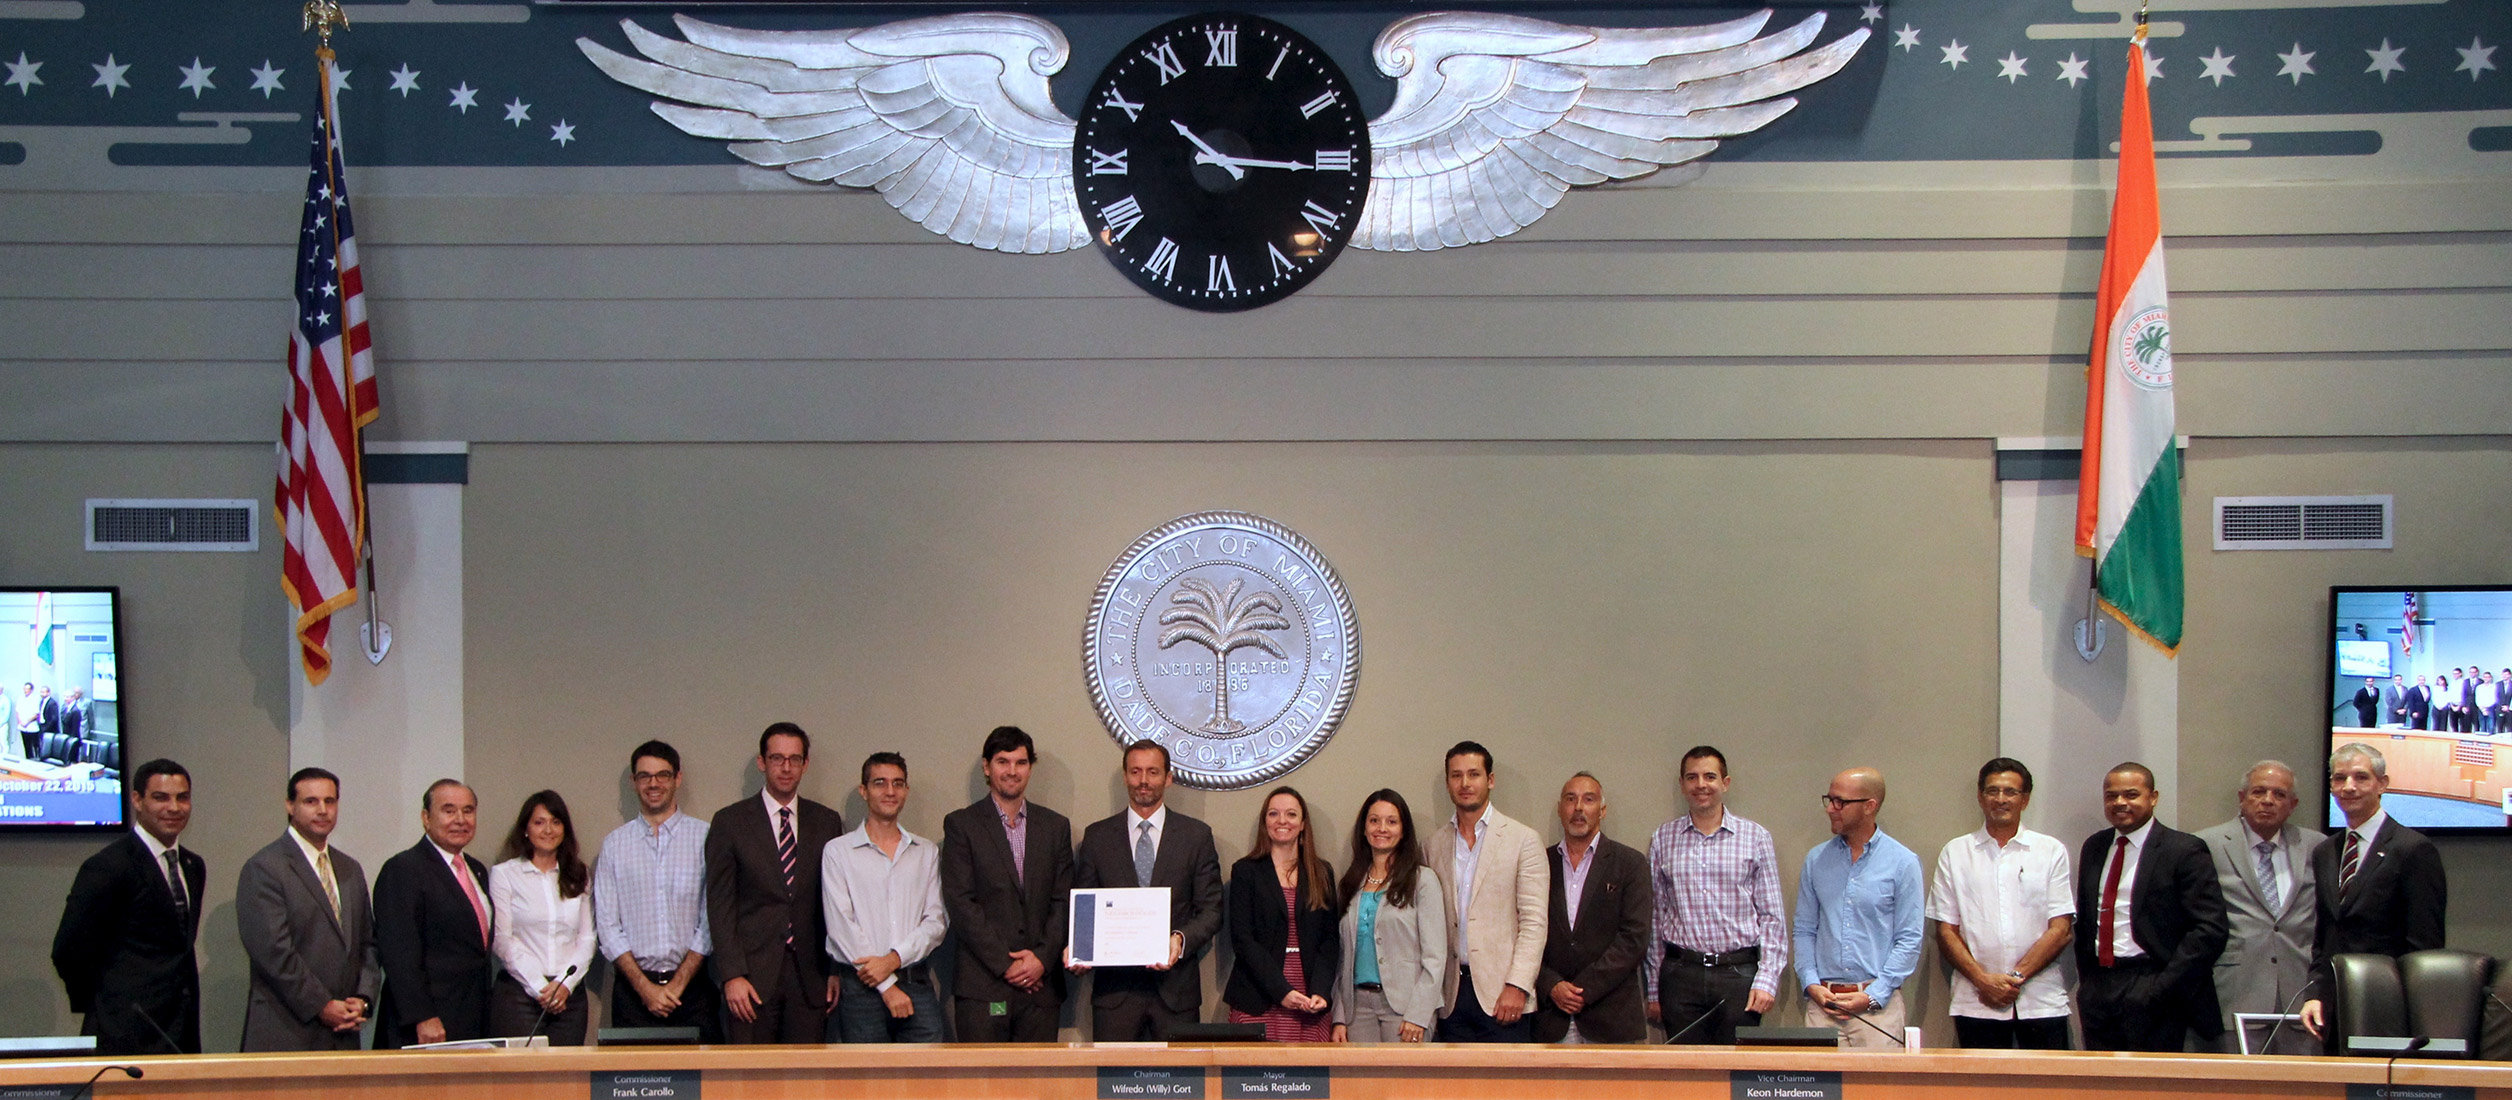 City-Commission-recognition-foto-courtesy-of-Miami-P&Z-dept-WEB